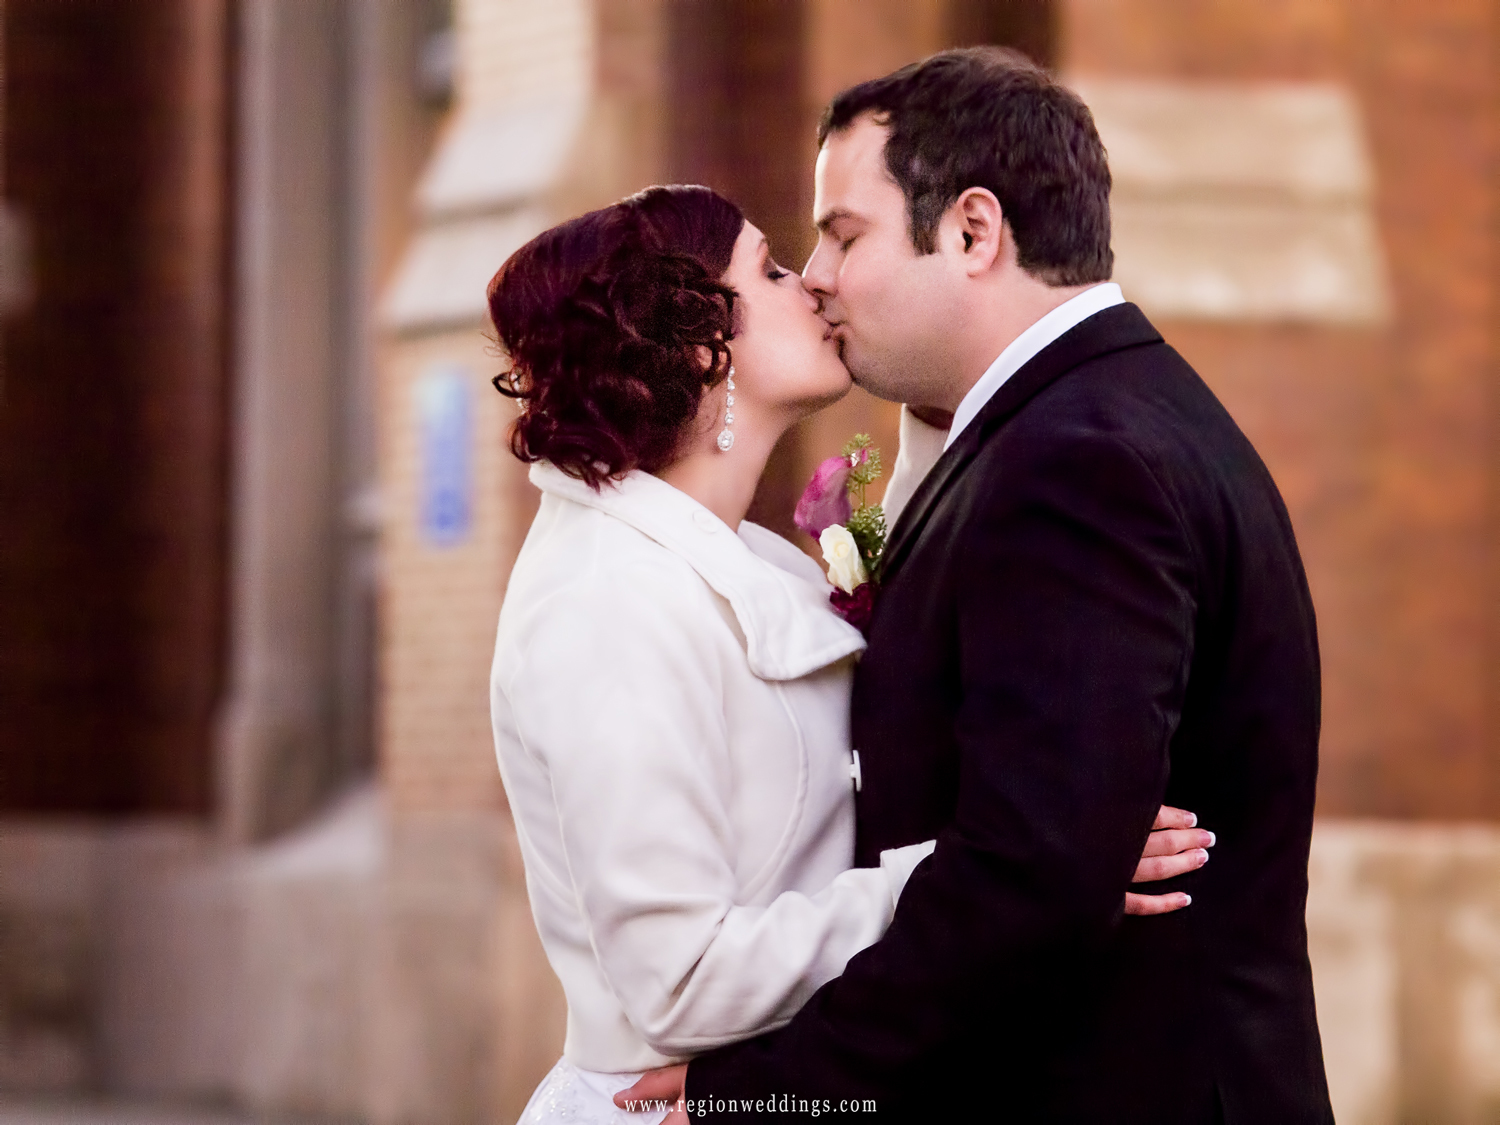 The bride and groom have a tender moment aloneoutside the steps of St. Andrew Church.